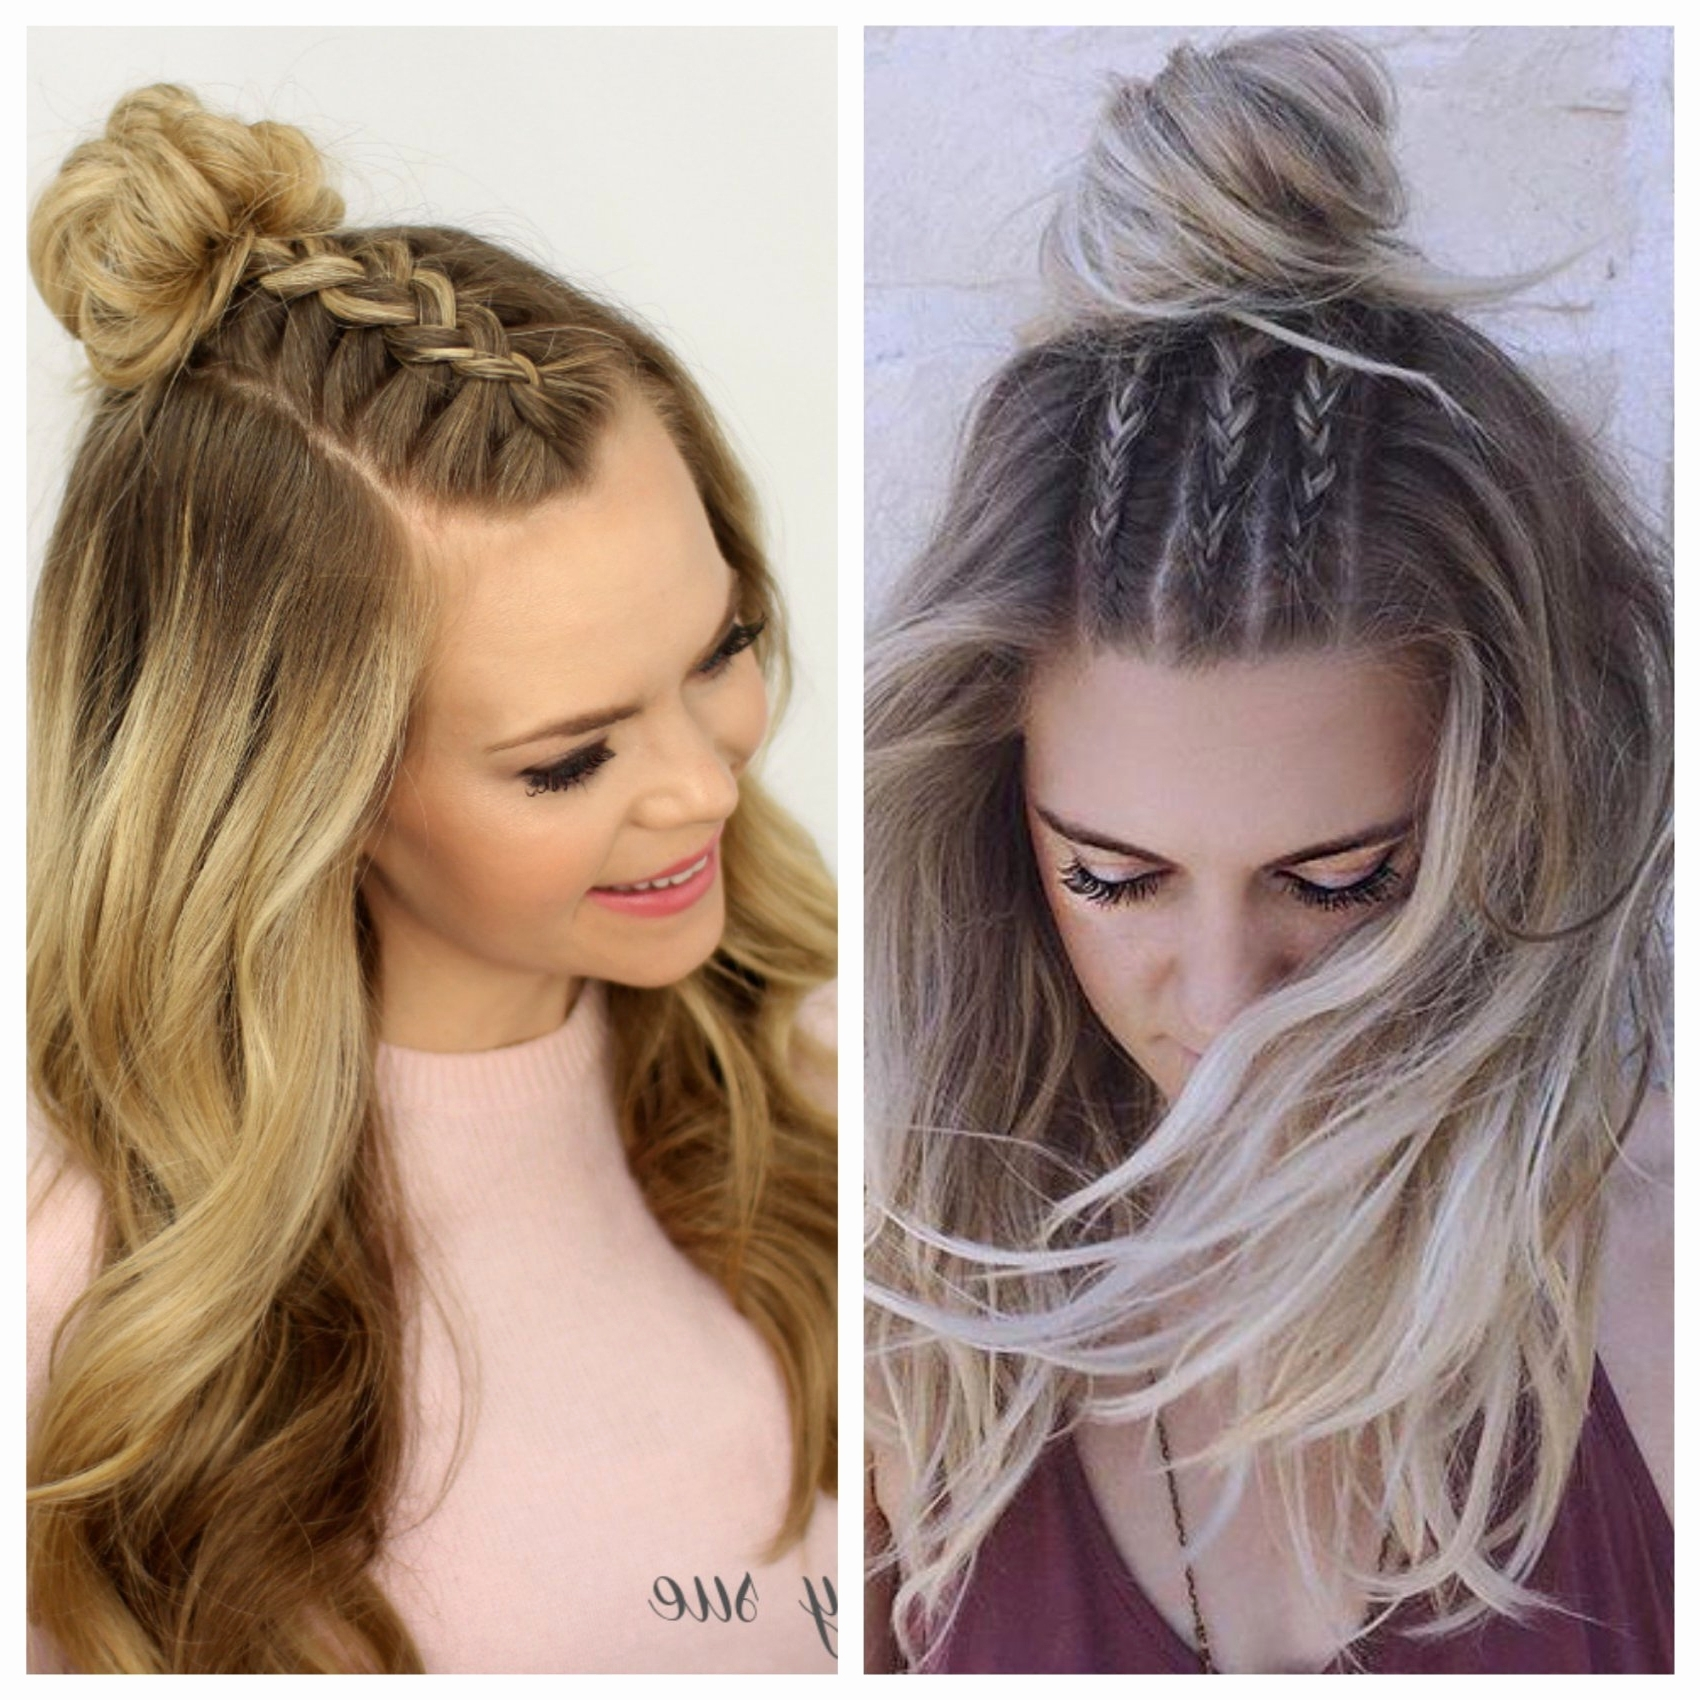 Simple Half Up Half Down Hairstyles Straight Hair Inspirational Half Within Straight Half Updo Hairstyles (View 14 of 15)